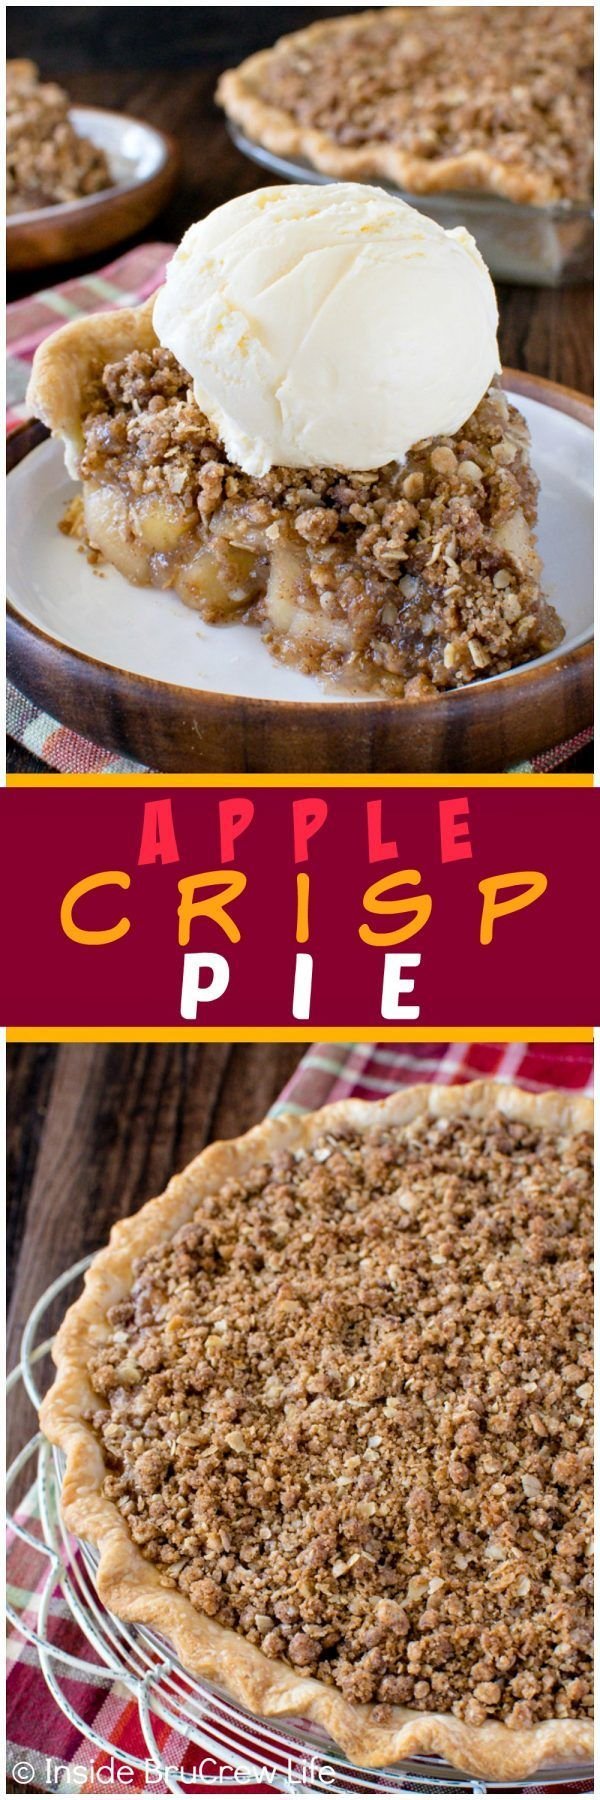 Apple Crisp Pie - homemade apple pie filling and a crunchy streusel topping makes this an easy fall dessert recipe to make!  Great for Thanksgiving day dinners!